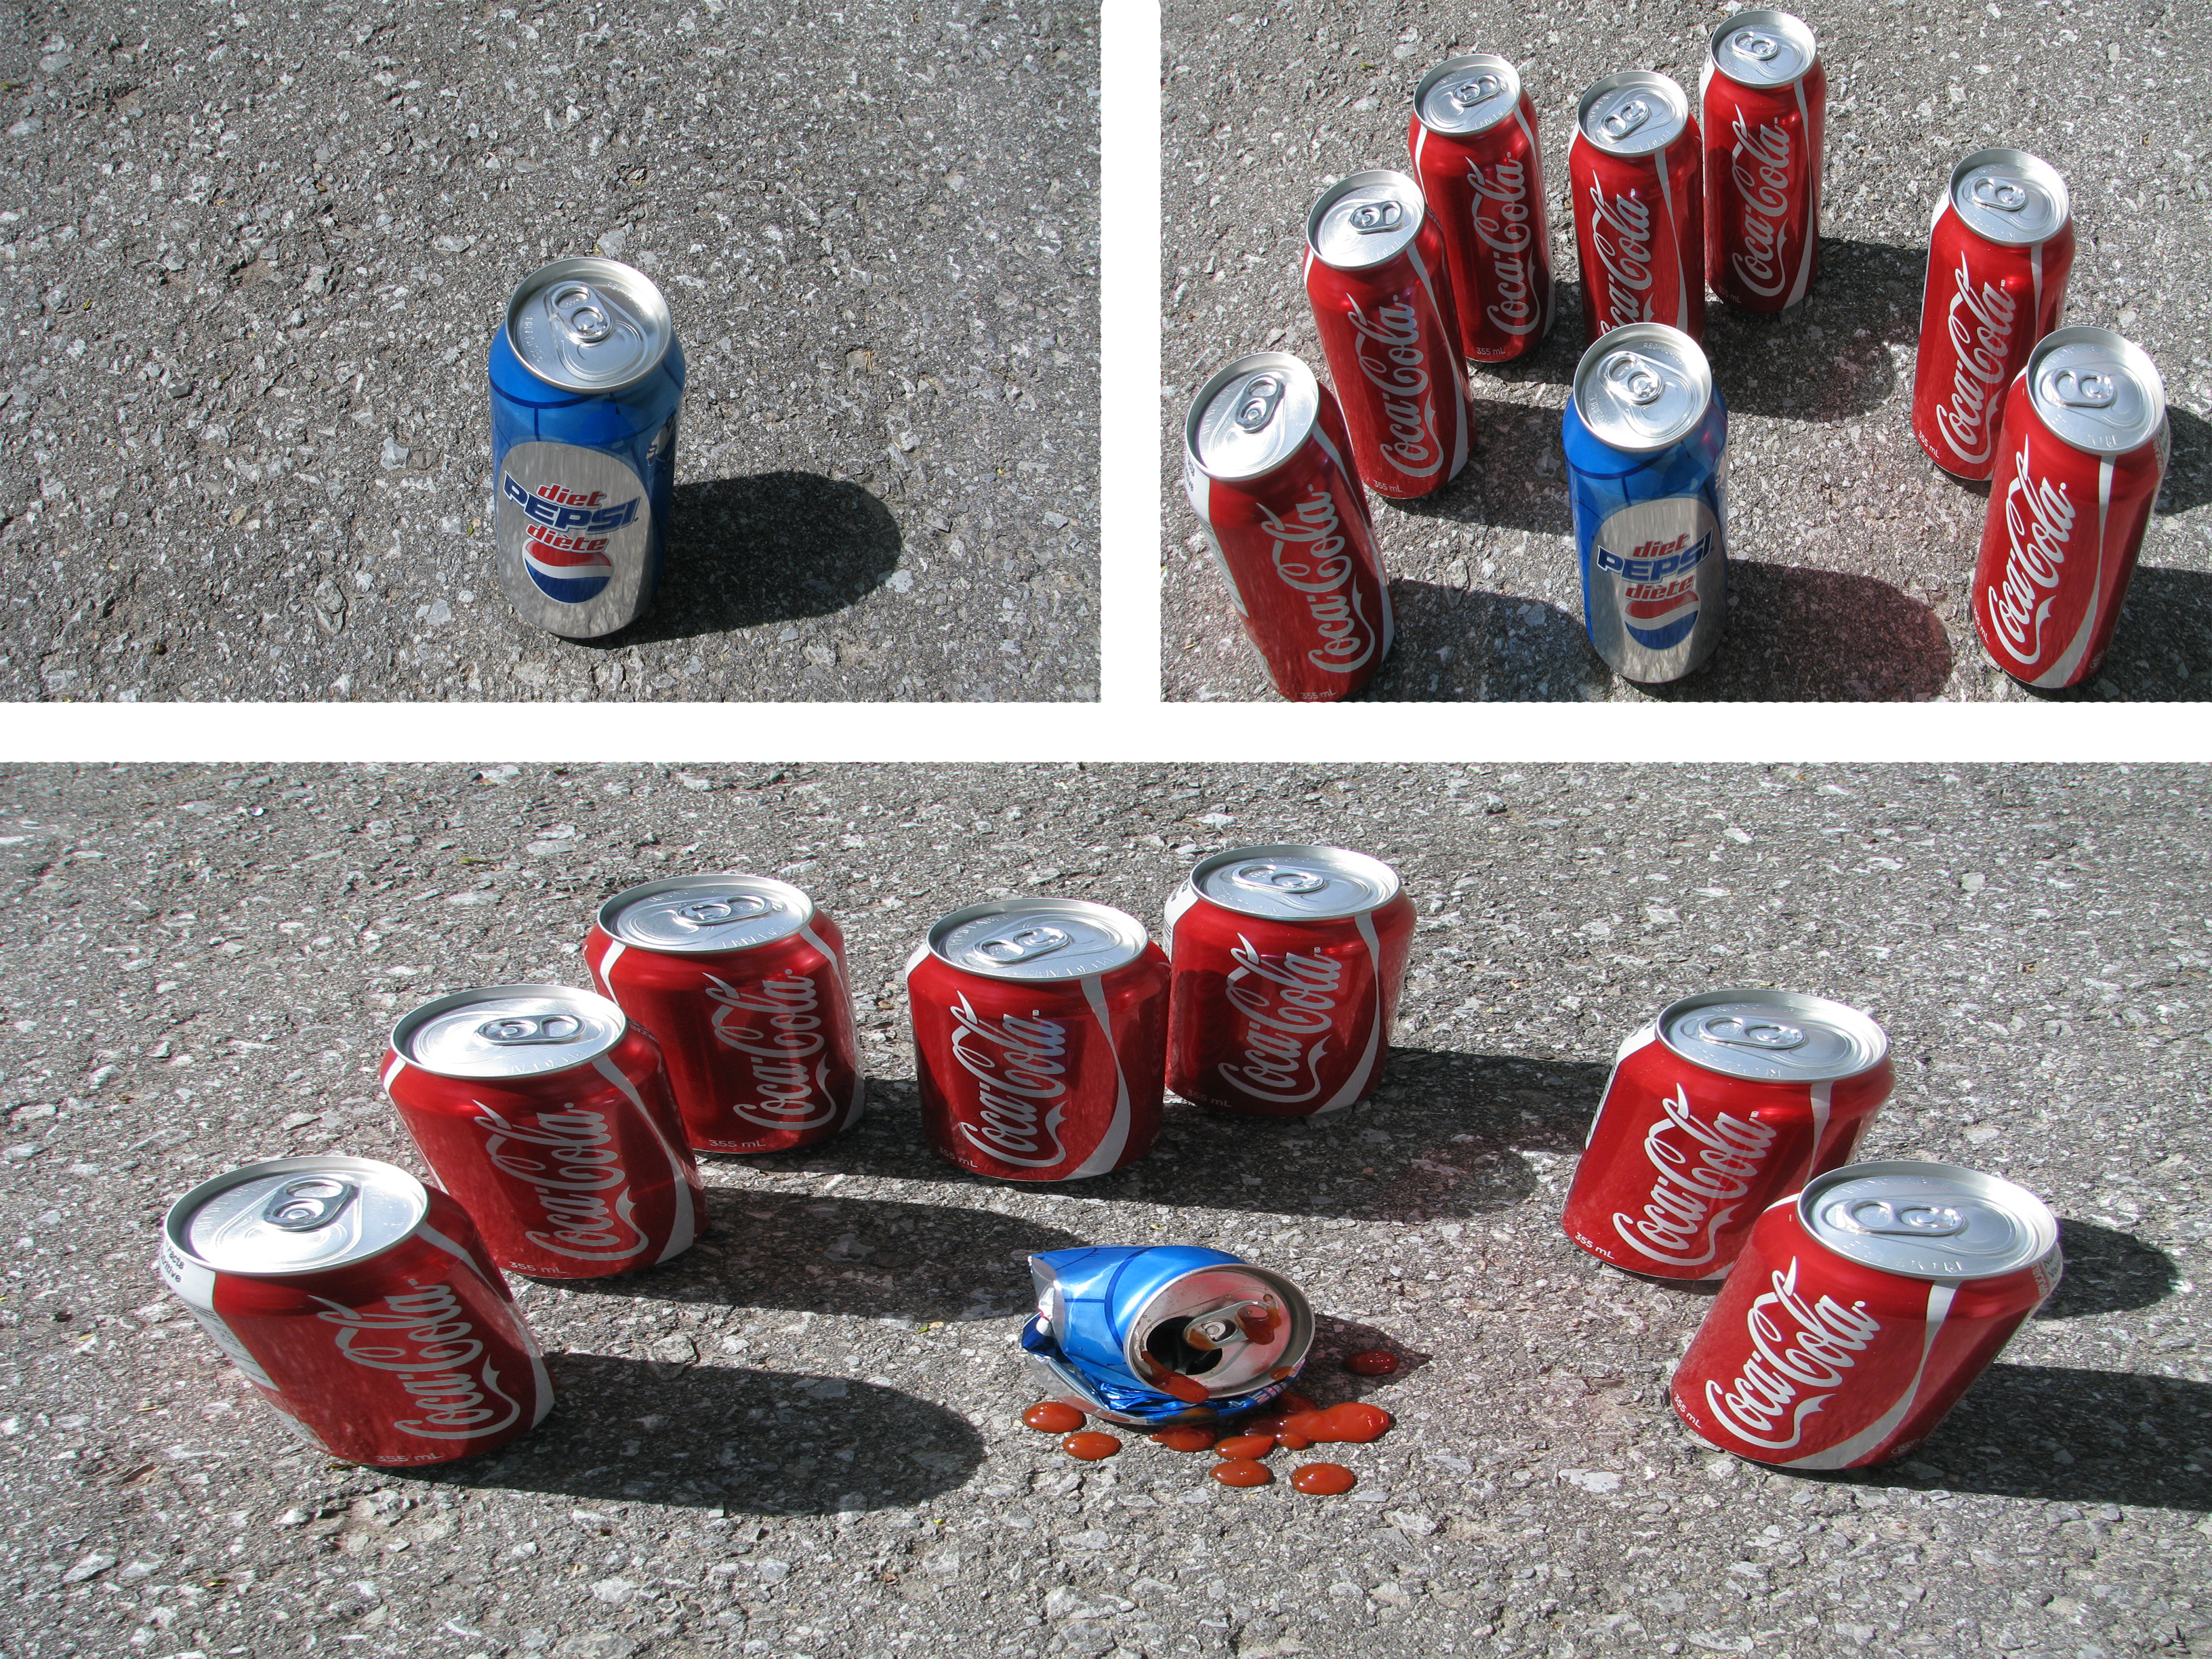 coca cola is better than pepsi